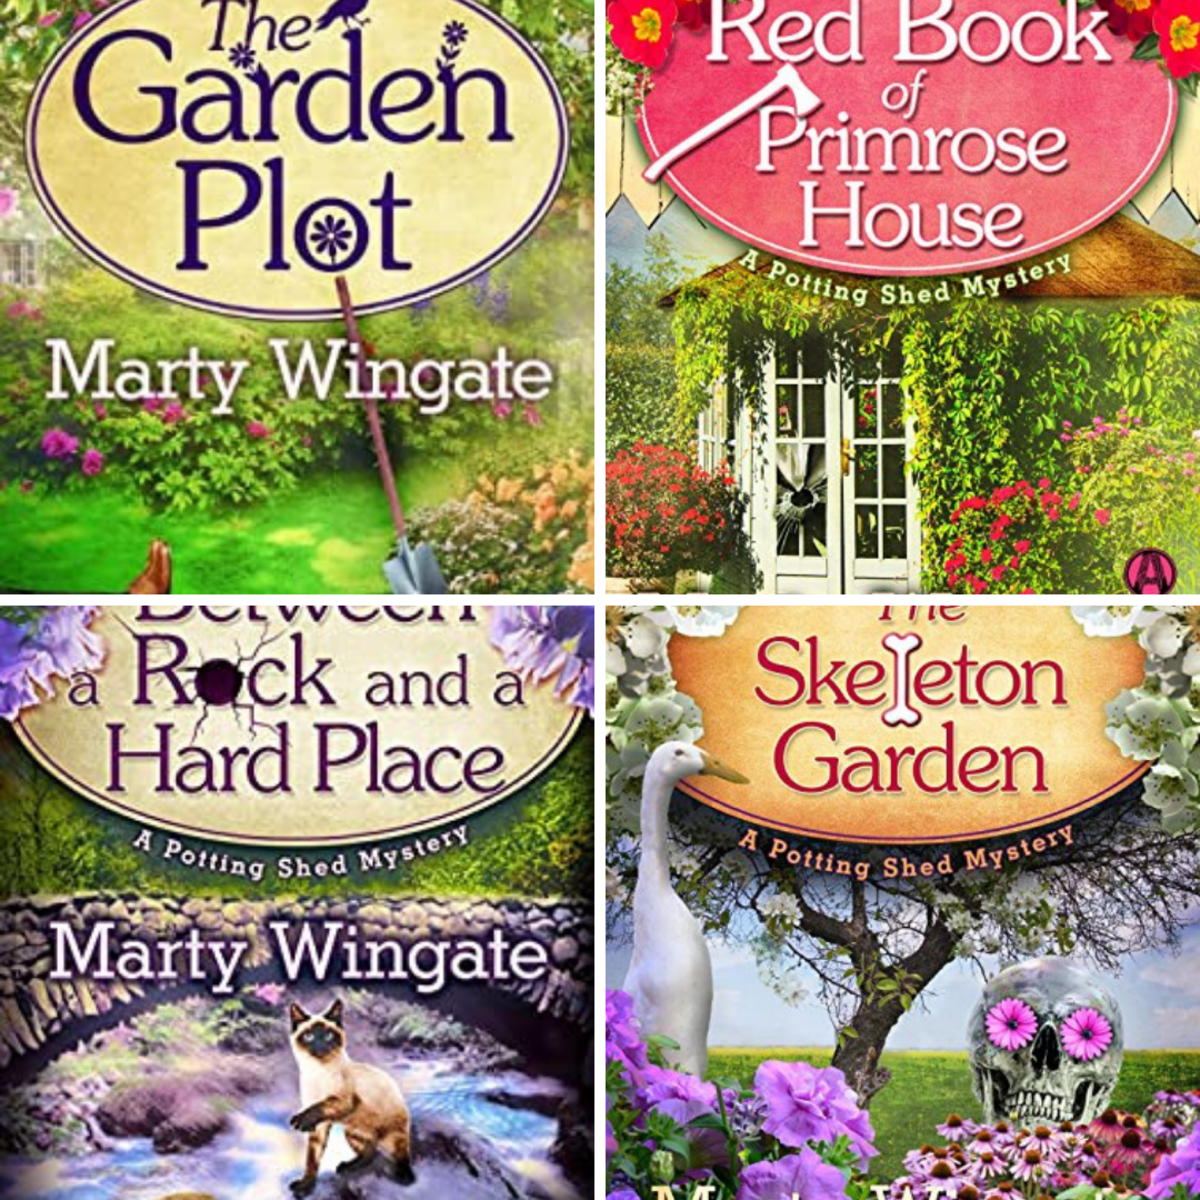 These are the first four books in The Potting Shed Mystery Series